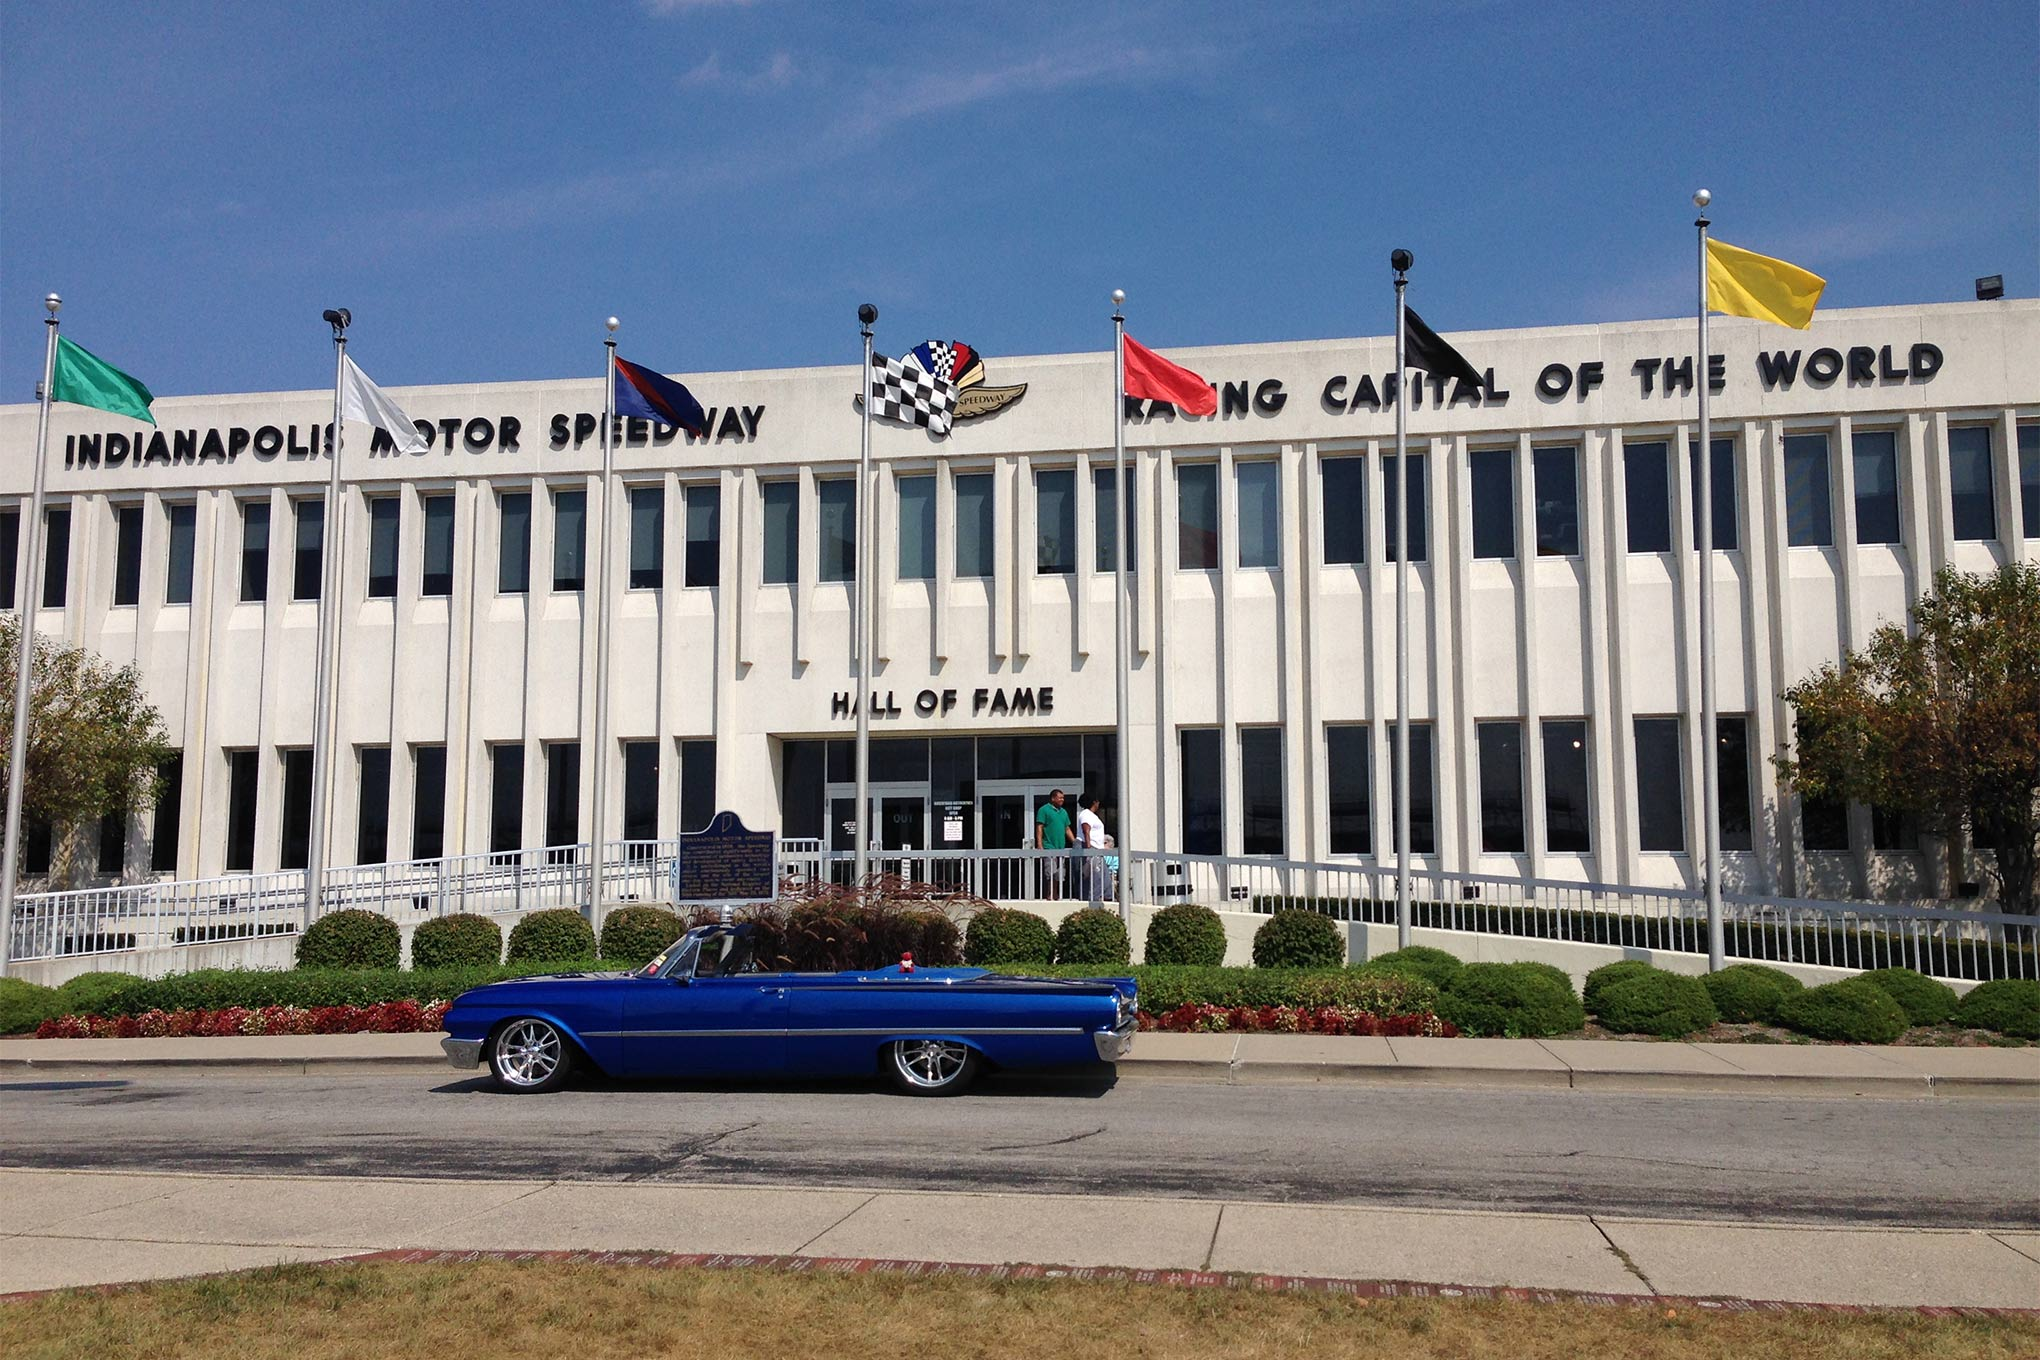 On Labor Day we visited the Indianapolis Motor Speedway and Museum. The track looks even larger when viewed from the infield. The museum contains many of the winning vehicles from past races.